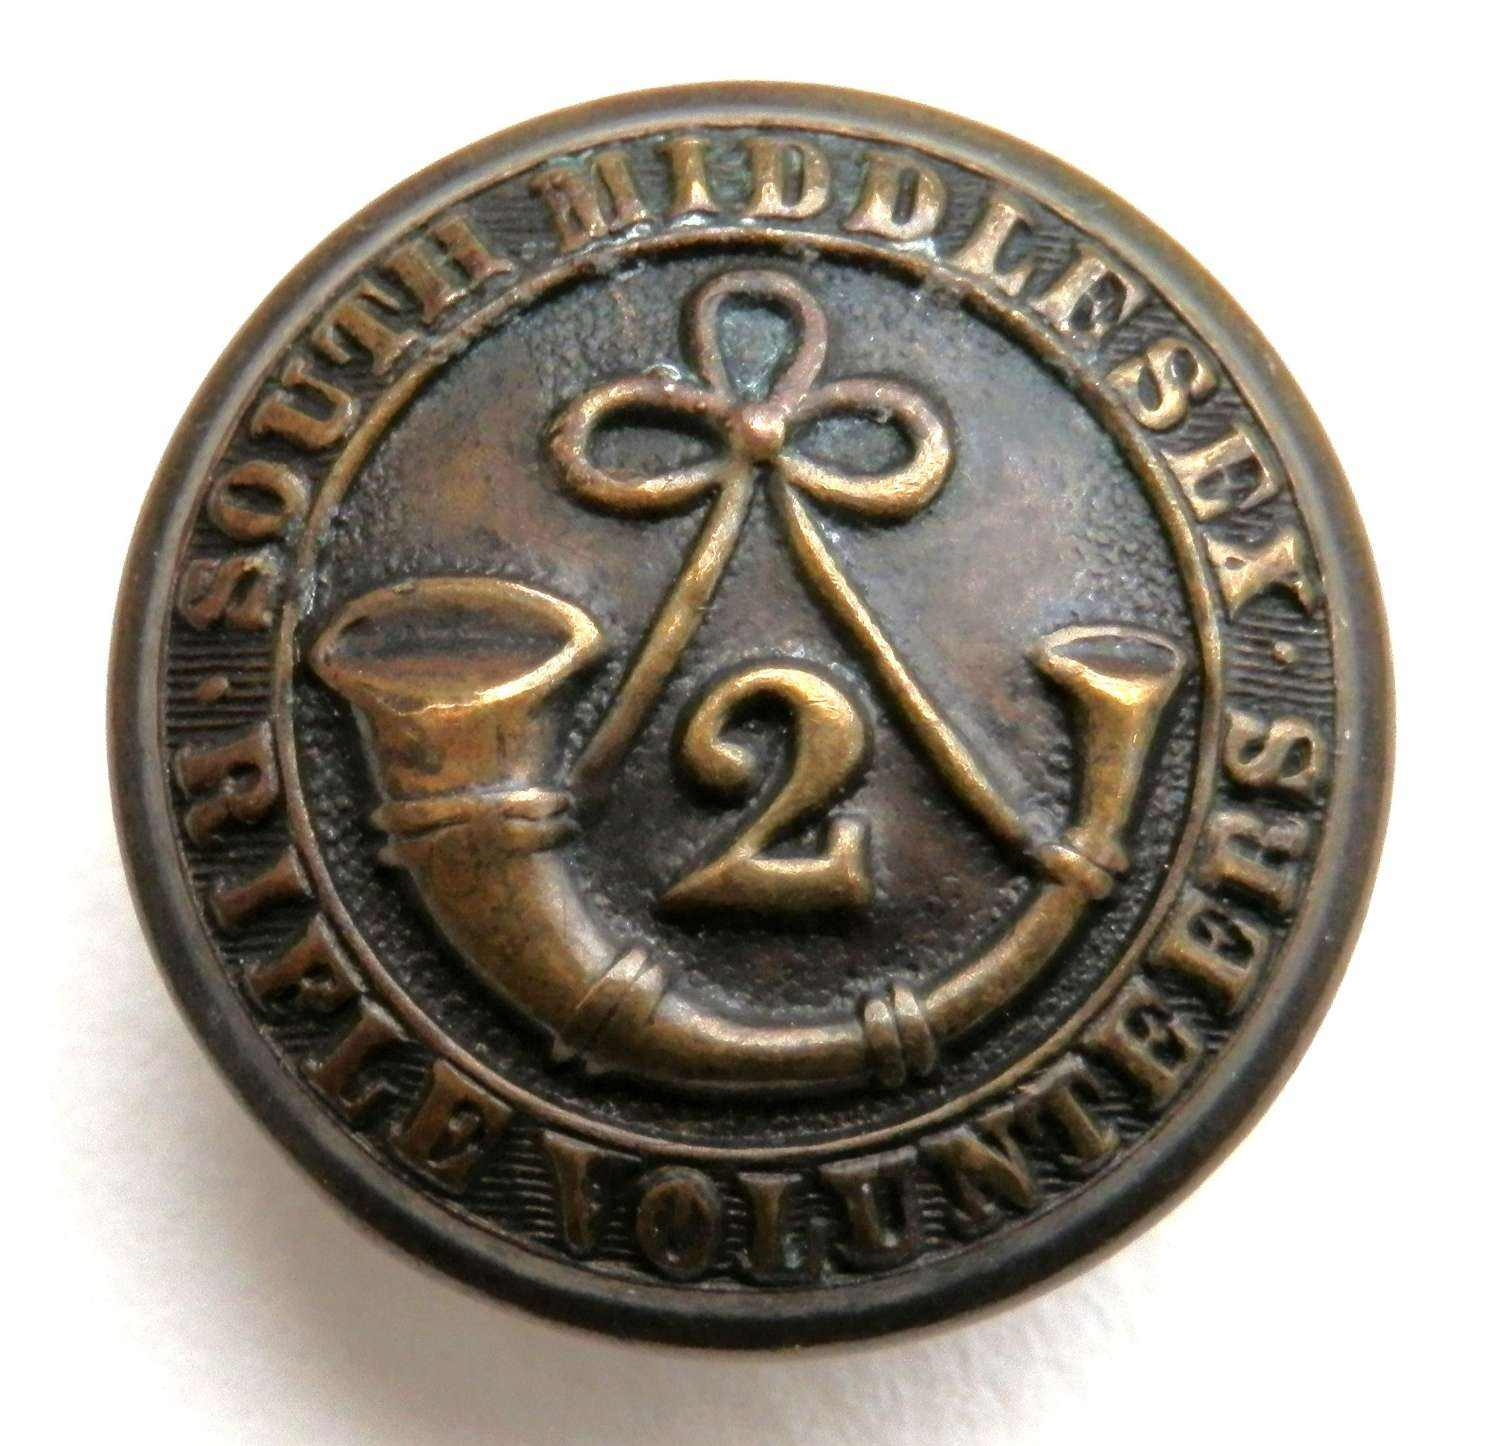 2nd South Middlesex Volunteers Button.